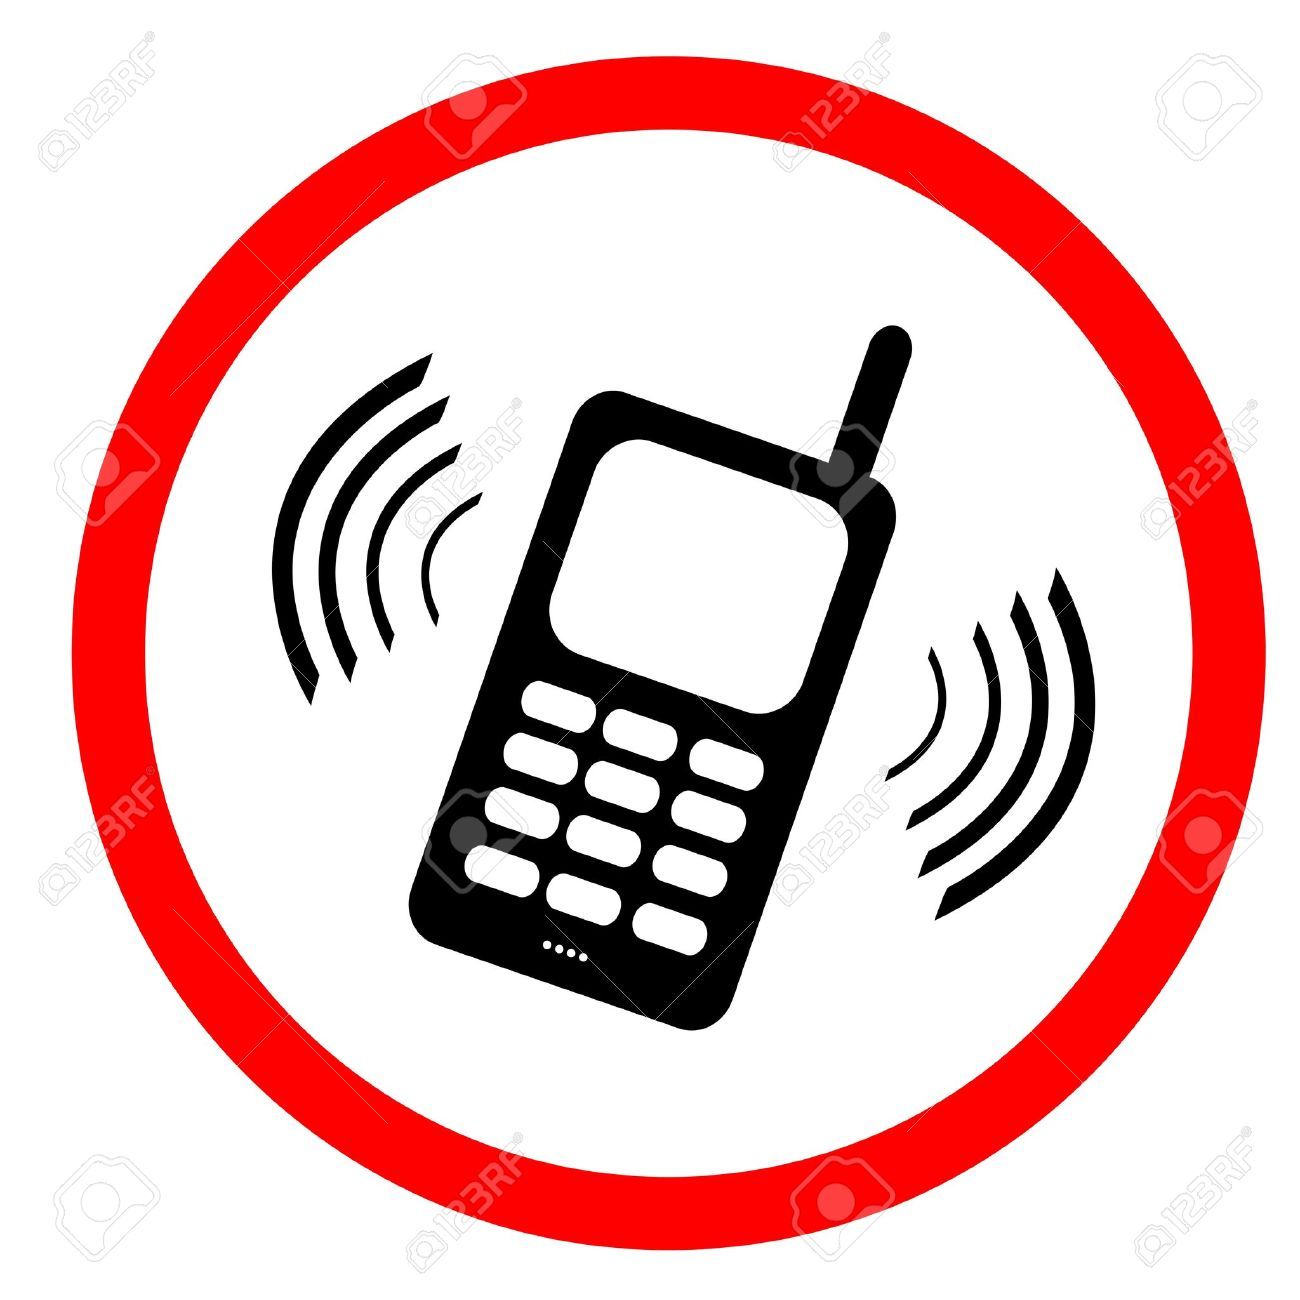 Cell phone tax clipground. Cellphone clipart mobile sign